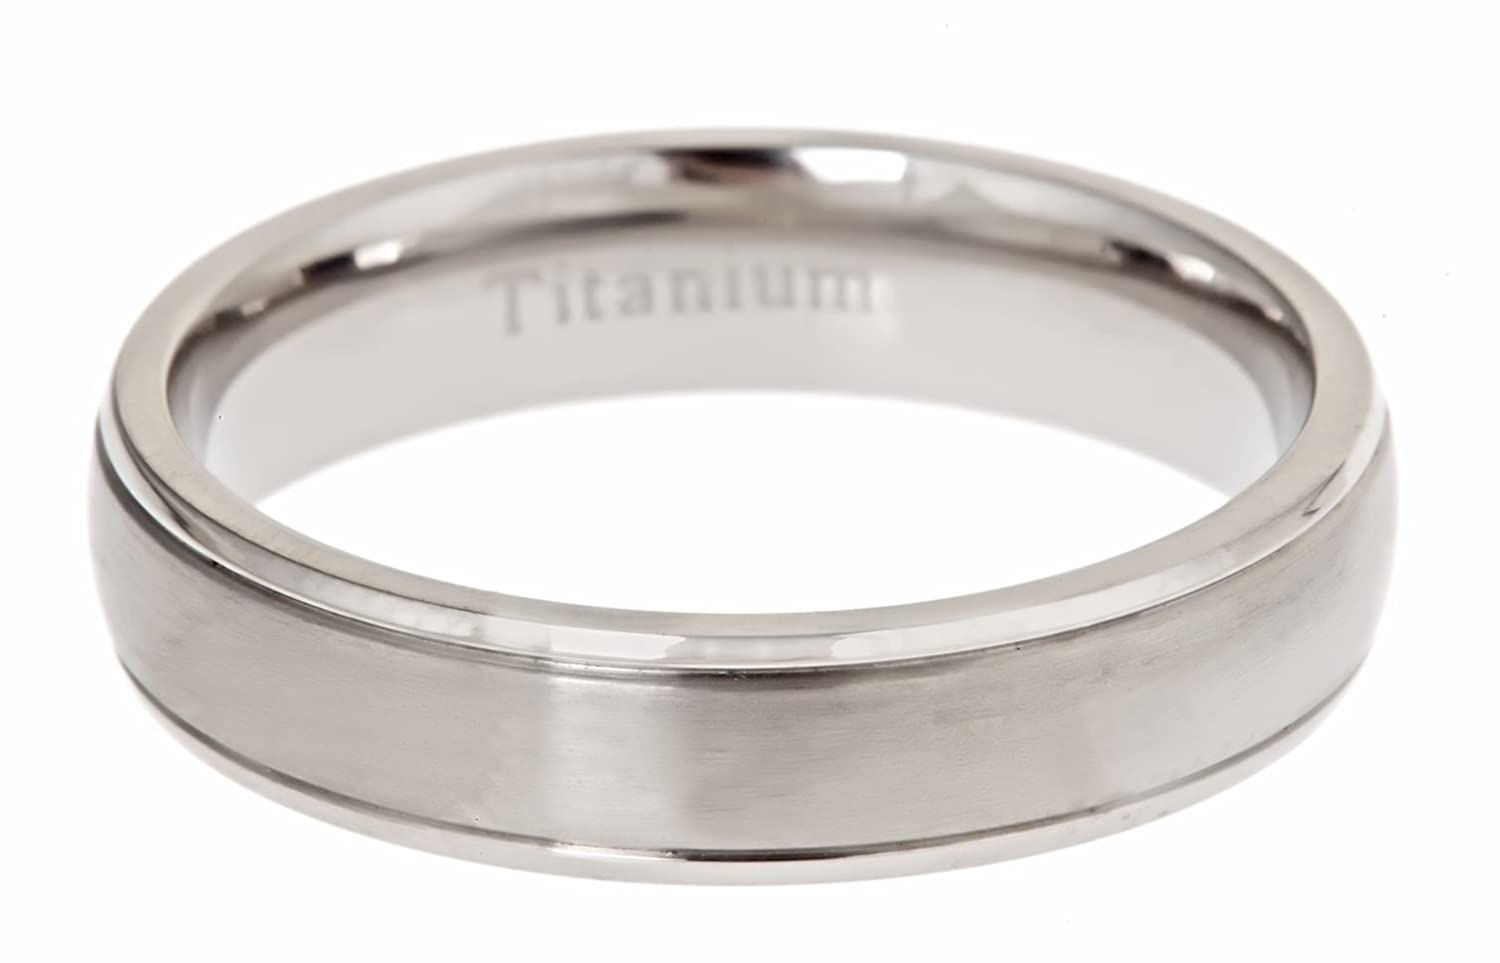 MJ Metals Jewlery MJ 5mm Brushed Polished Titanium Wedding Band Comfort Fit Band